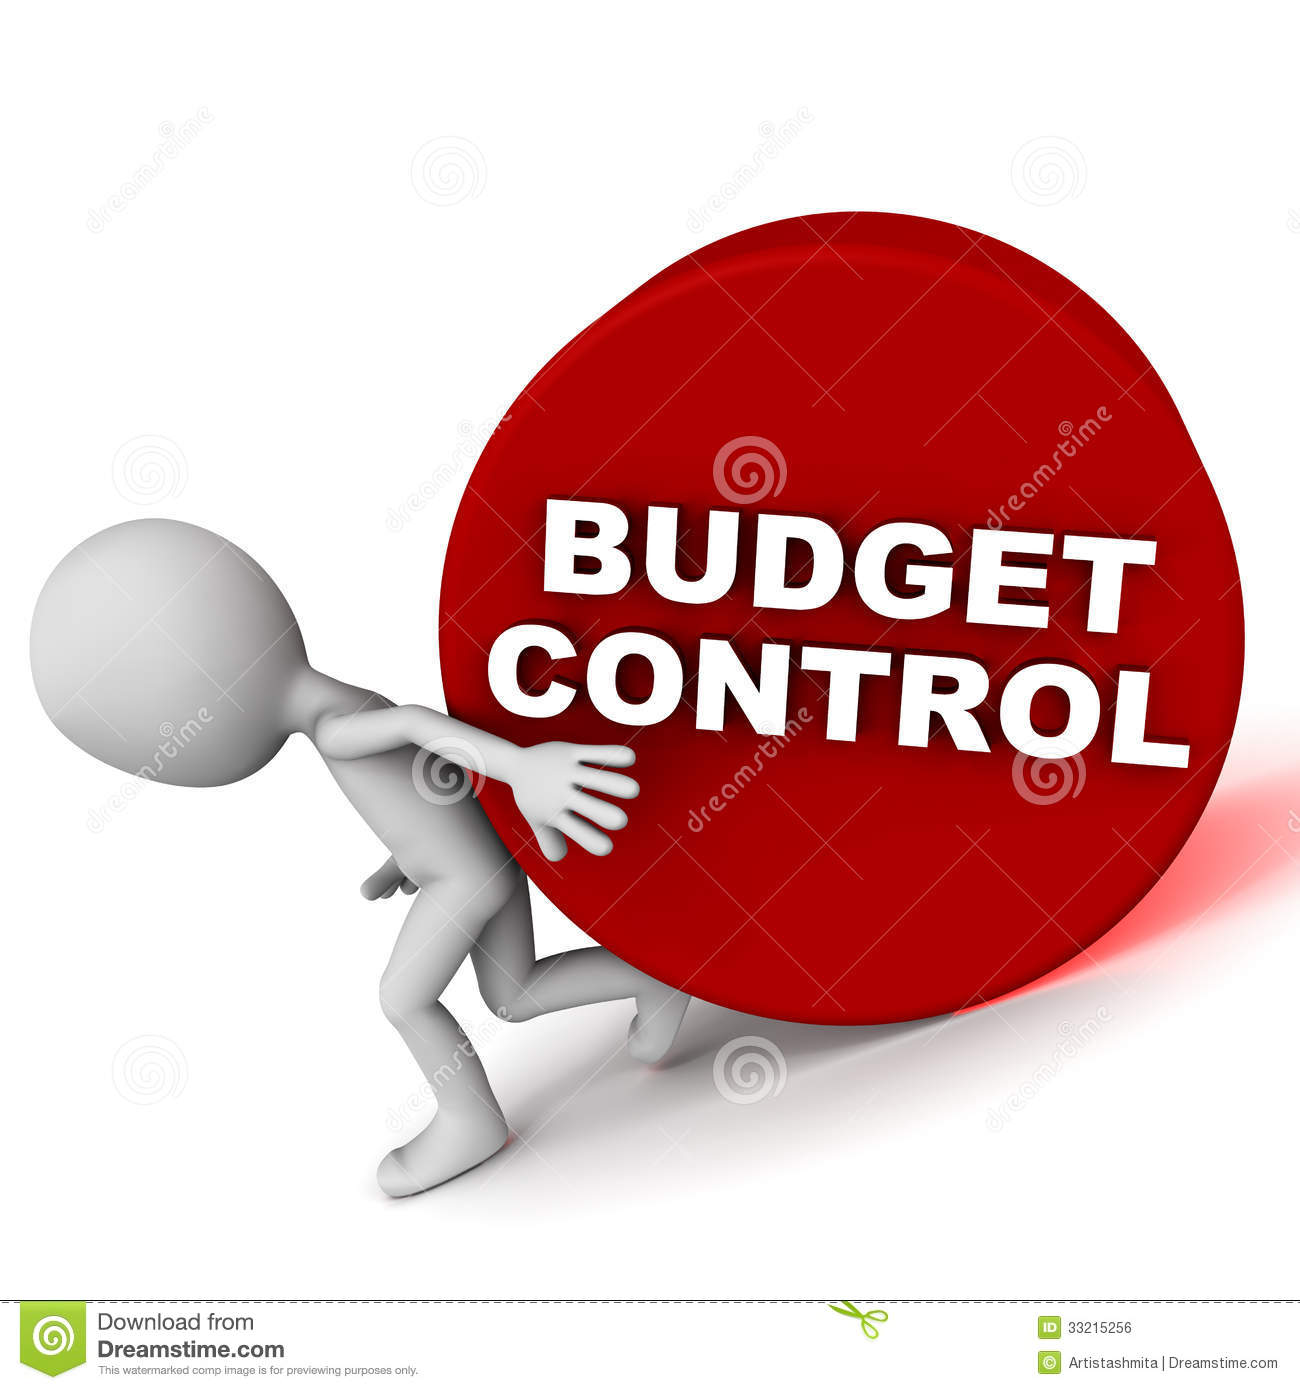 What Is a Financial Budget?